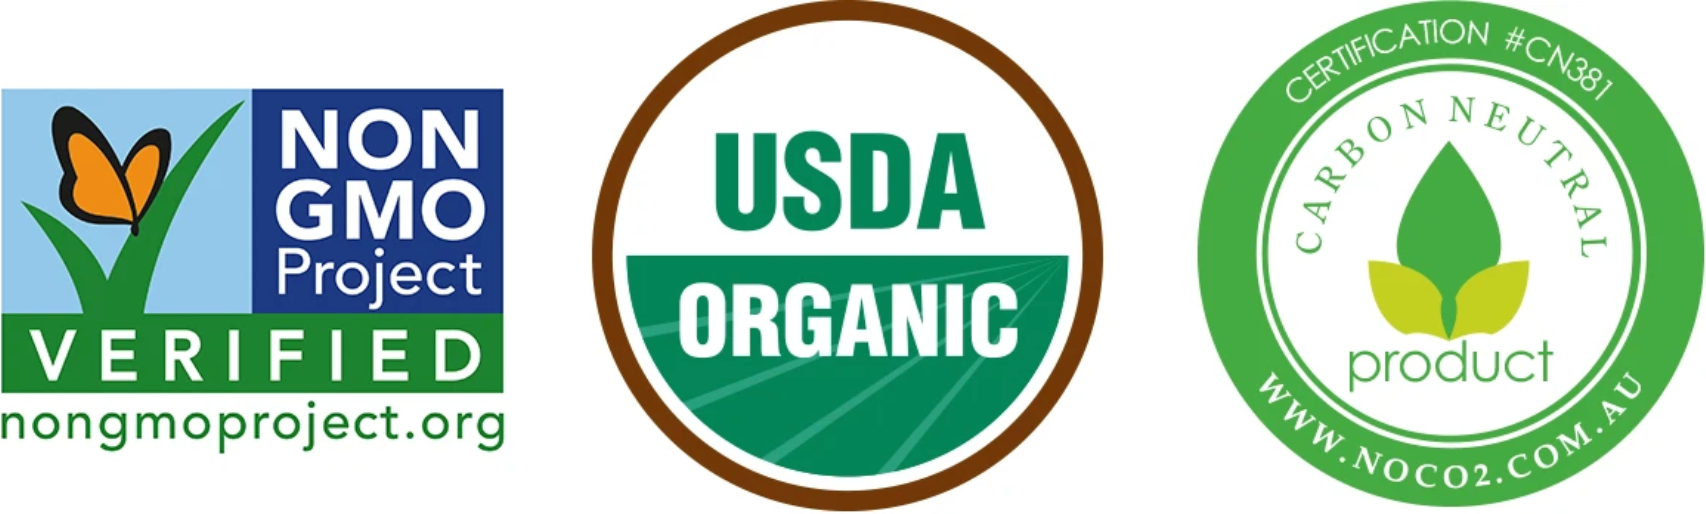 Organic Grass-fed Steak Bites non-gmo project verified usda organic carbon neutral animal welfare Certifications